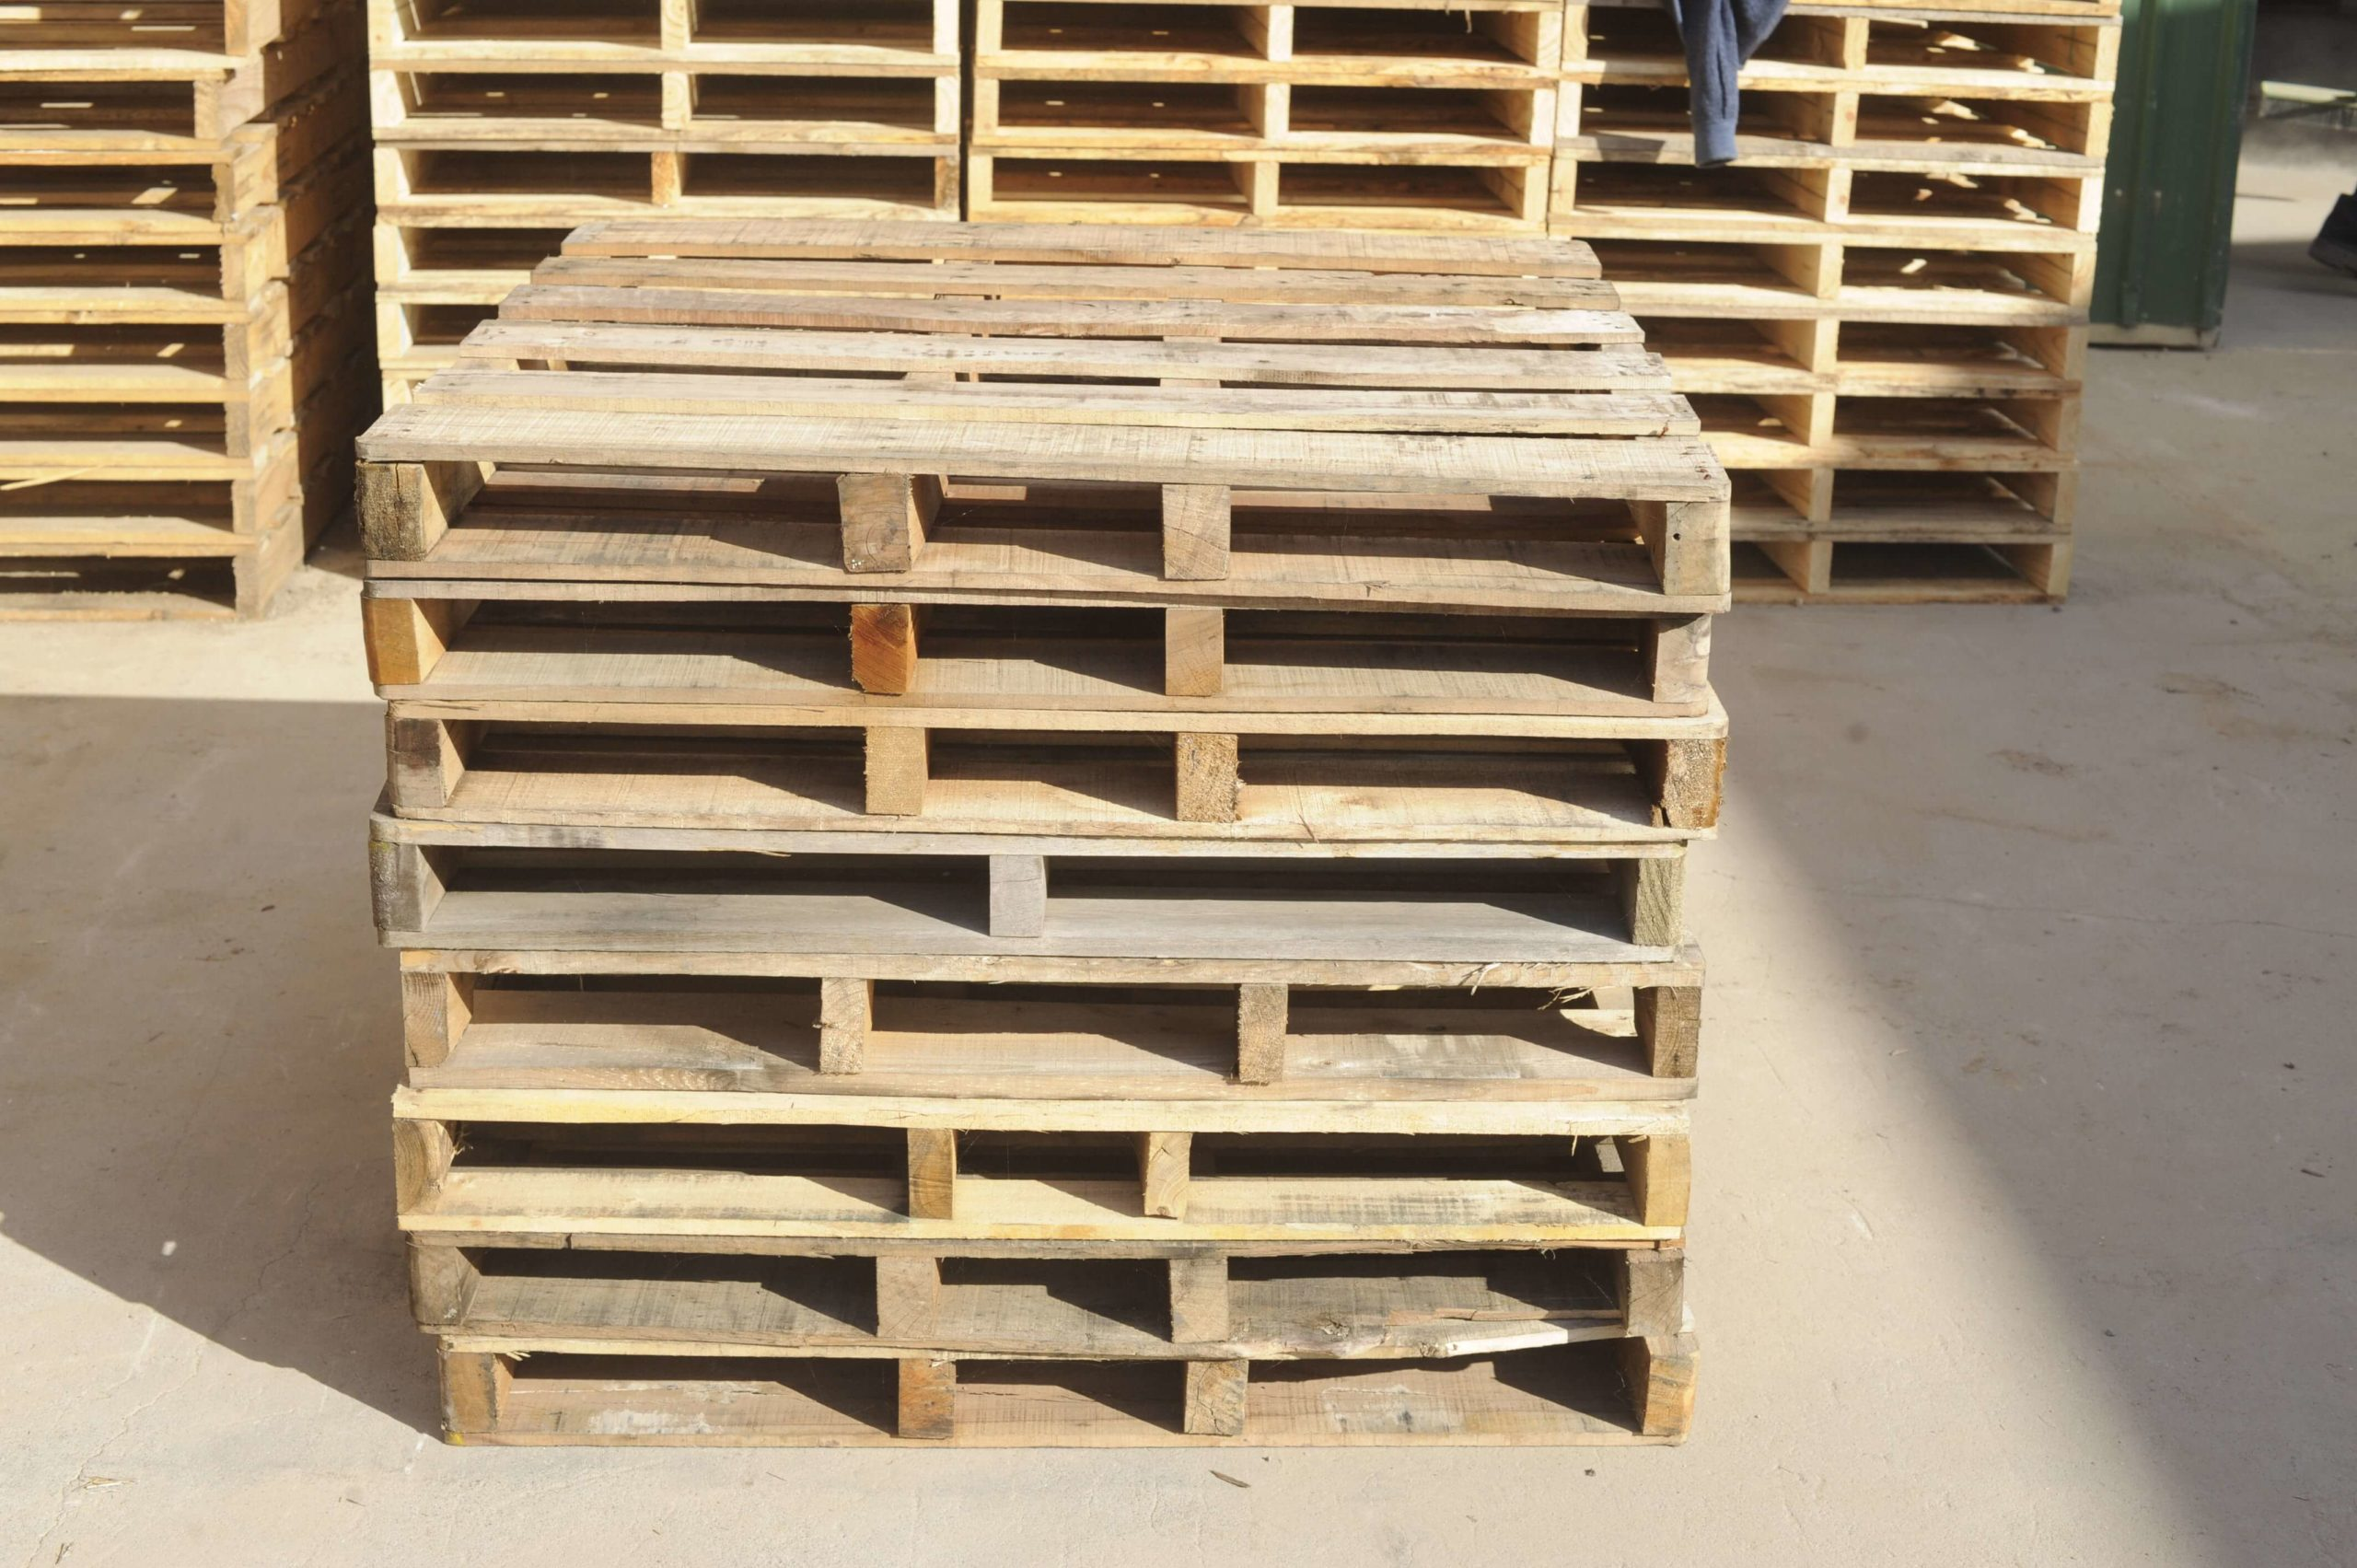 Know In Details About The Role Of Dunnage In Shipping The Export Pallets